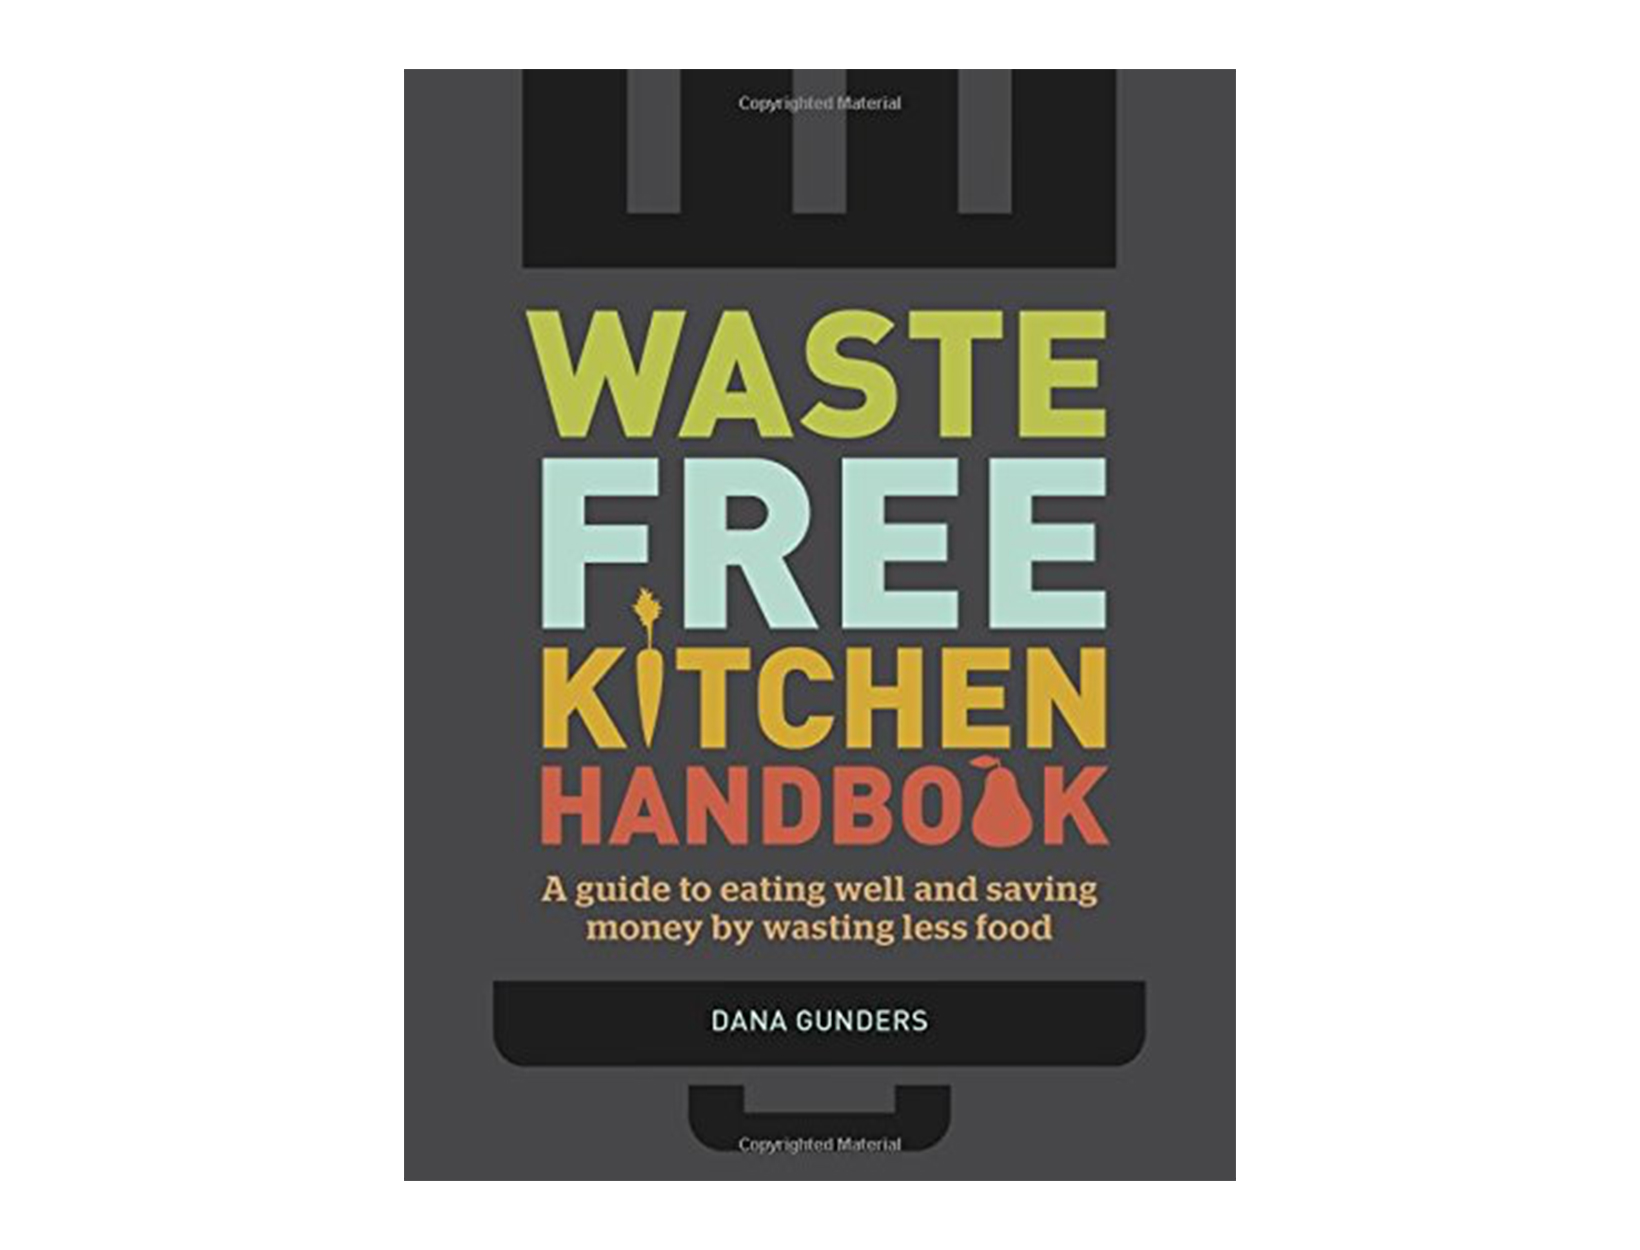 Waste-Free Kitchen Handbook: A Guide to Eating Well and Saving Money By Wasting Less Food by Dana Gunders